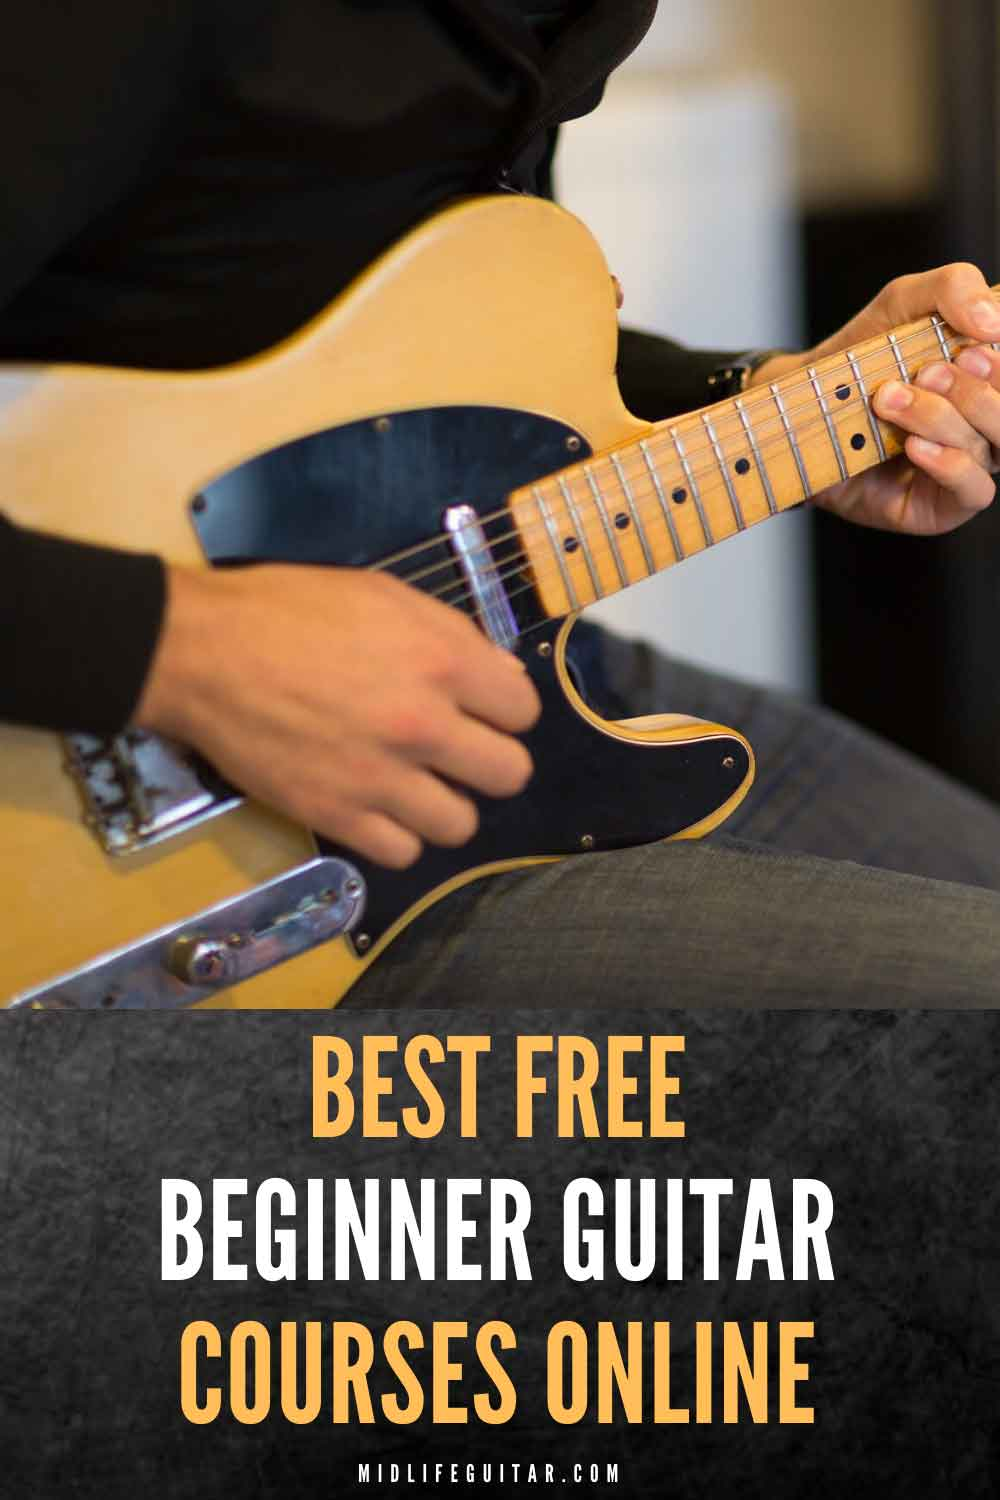 Best Free Beginner Guitar Courses Online